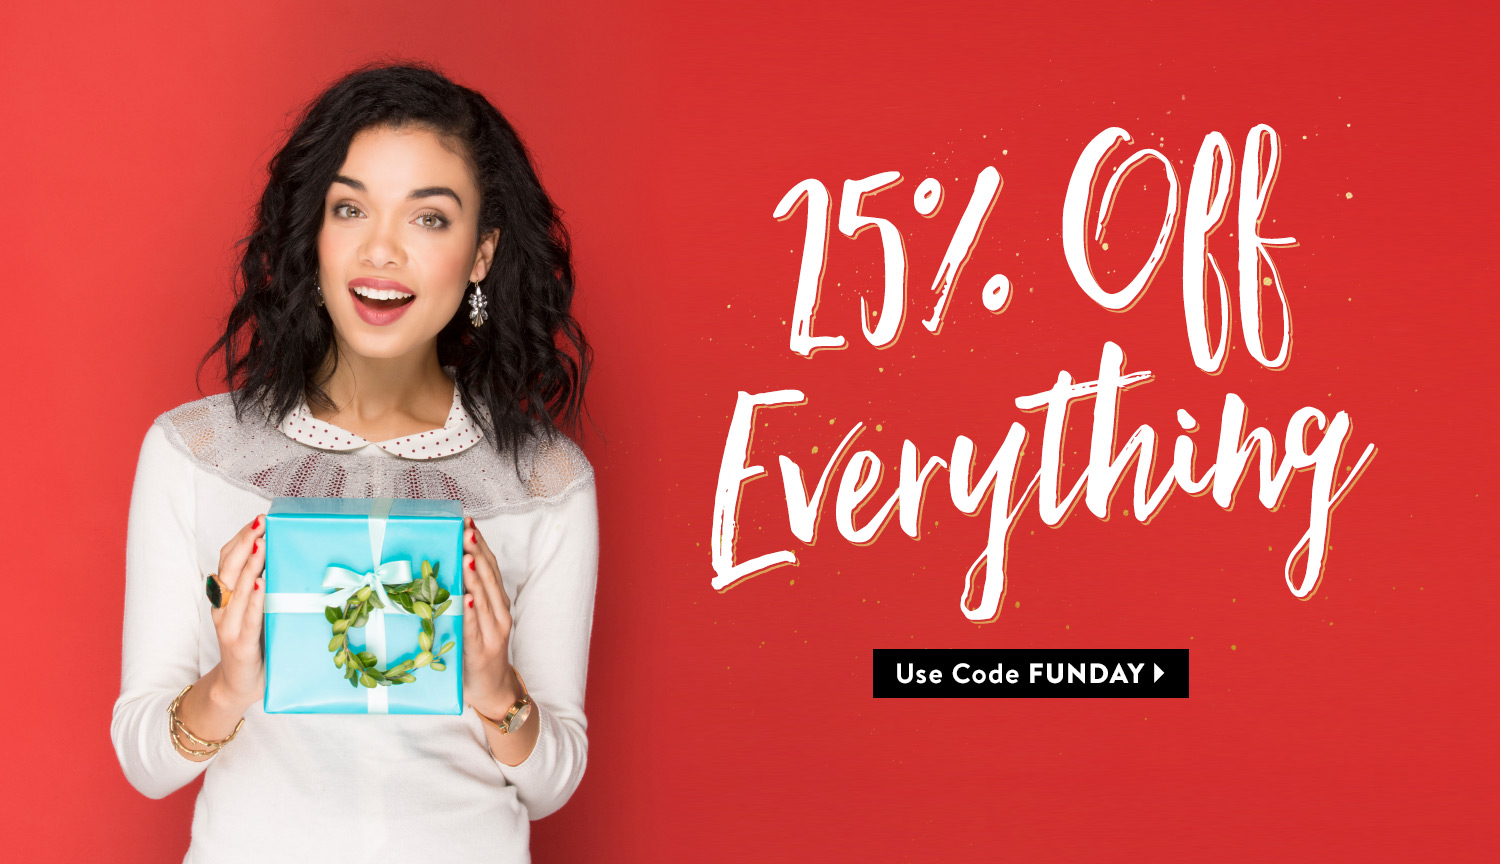 25% Off Everything. Use Code FUNDAY